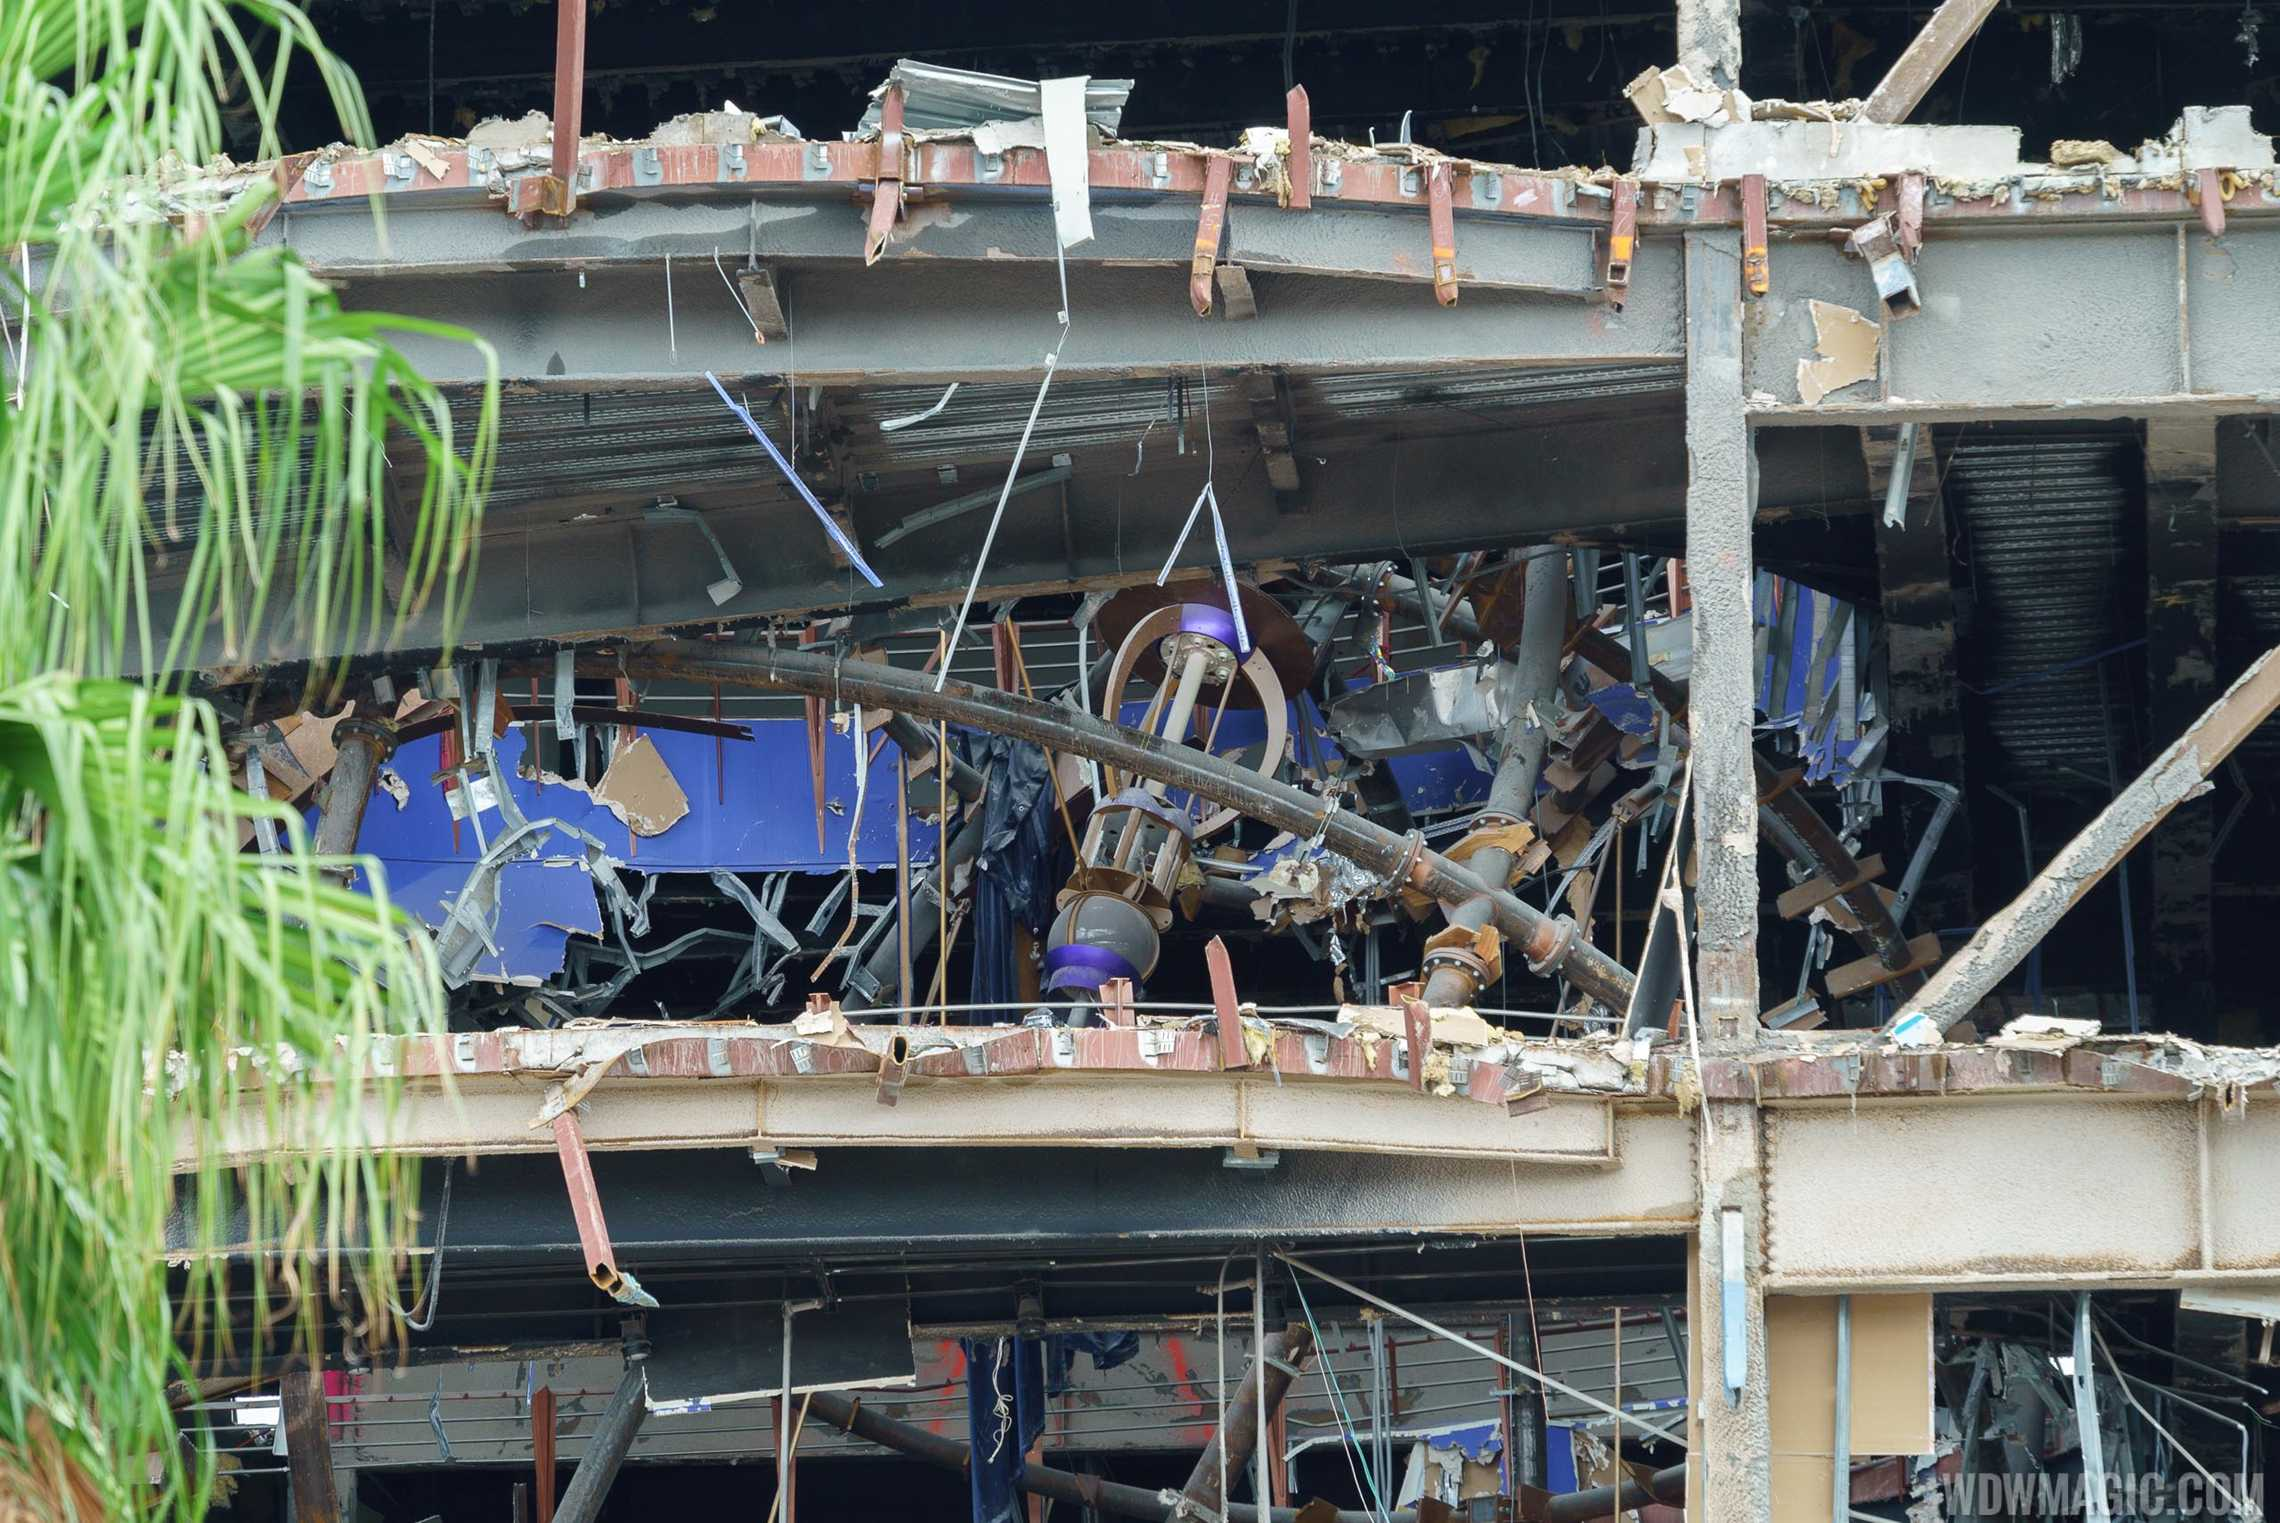 Disney Quest main building demolition